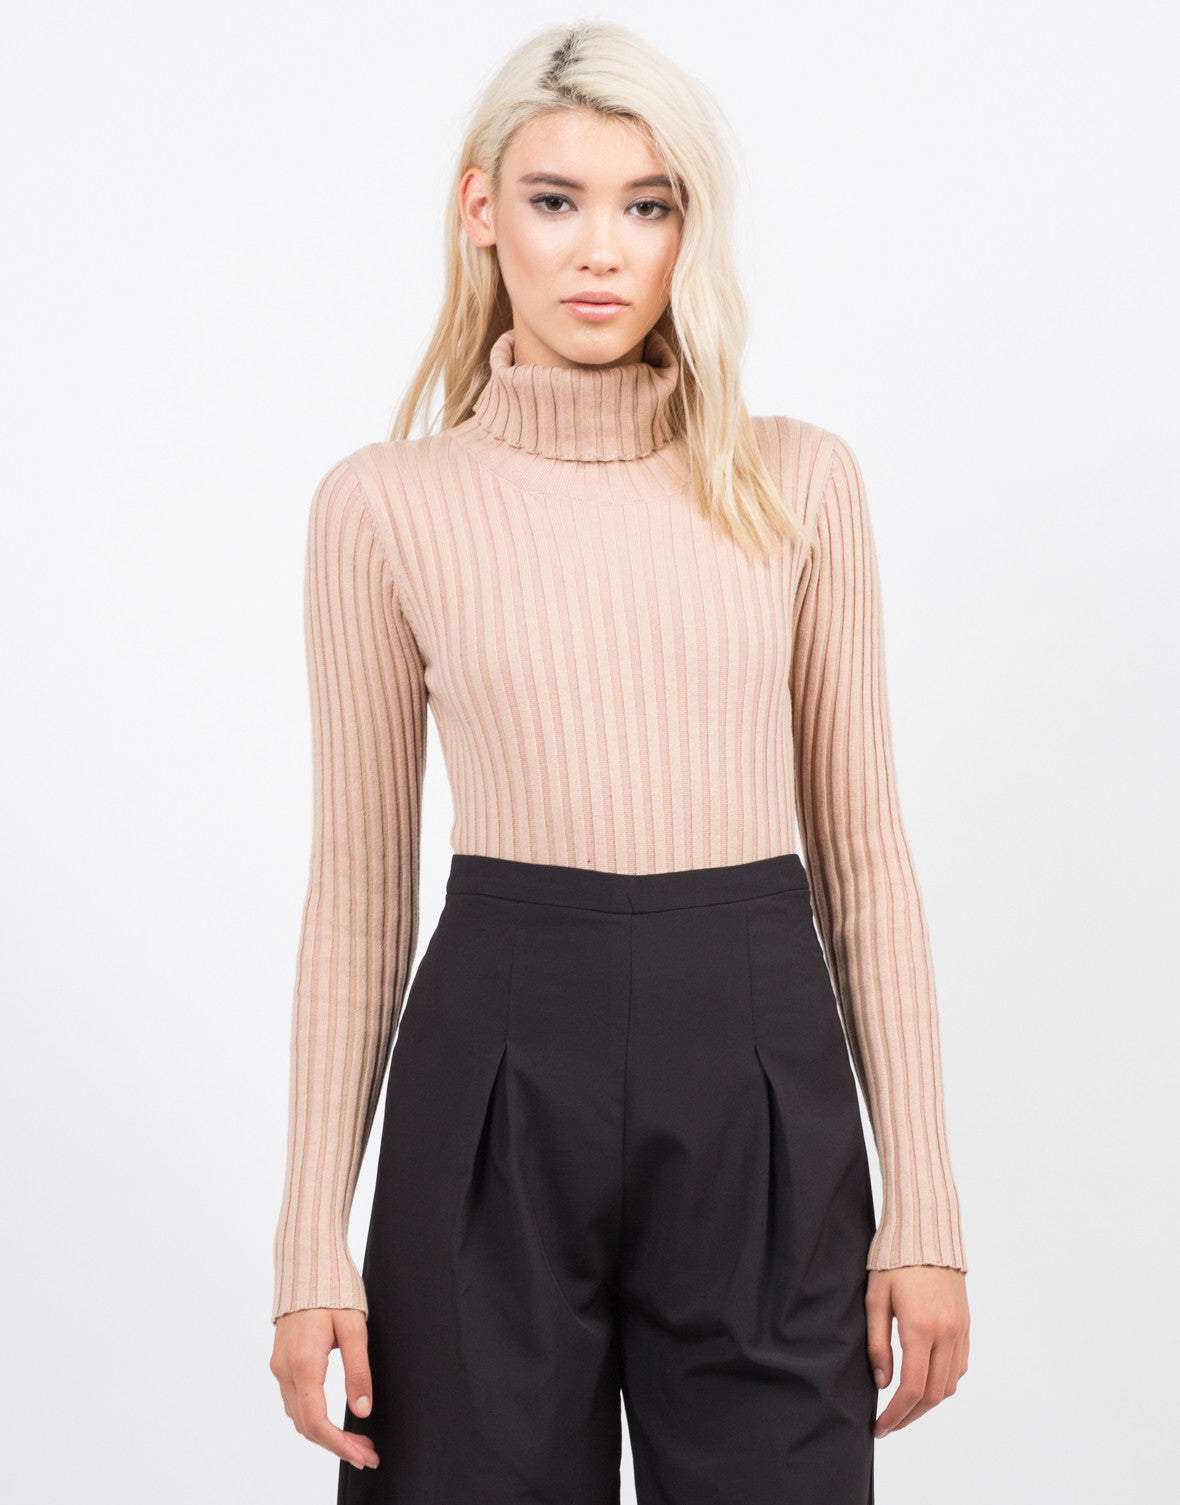 Ribbed Turtleneck Bodysuit - Black Bodysuit